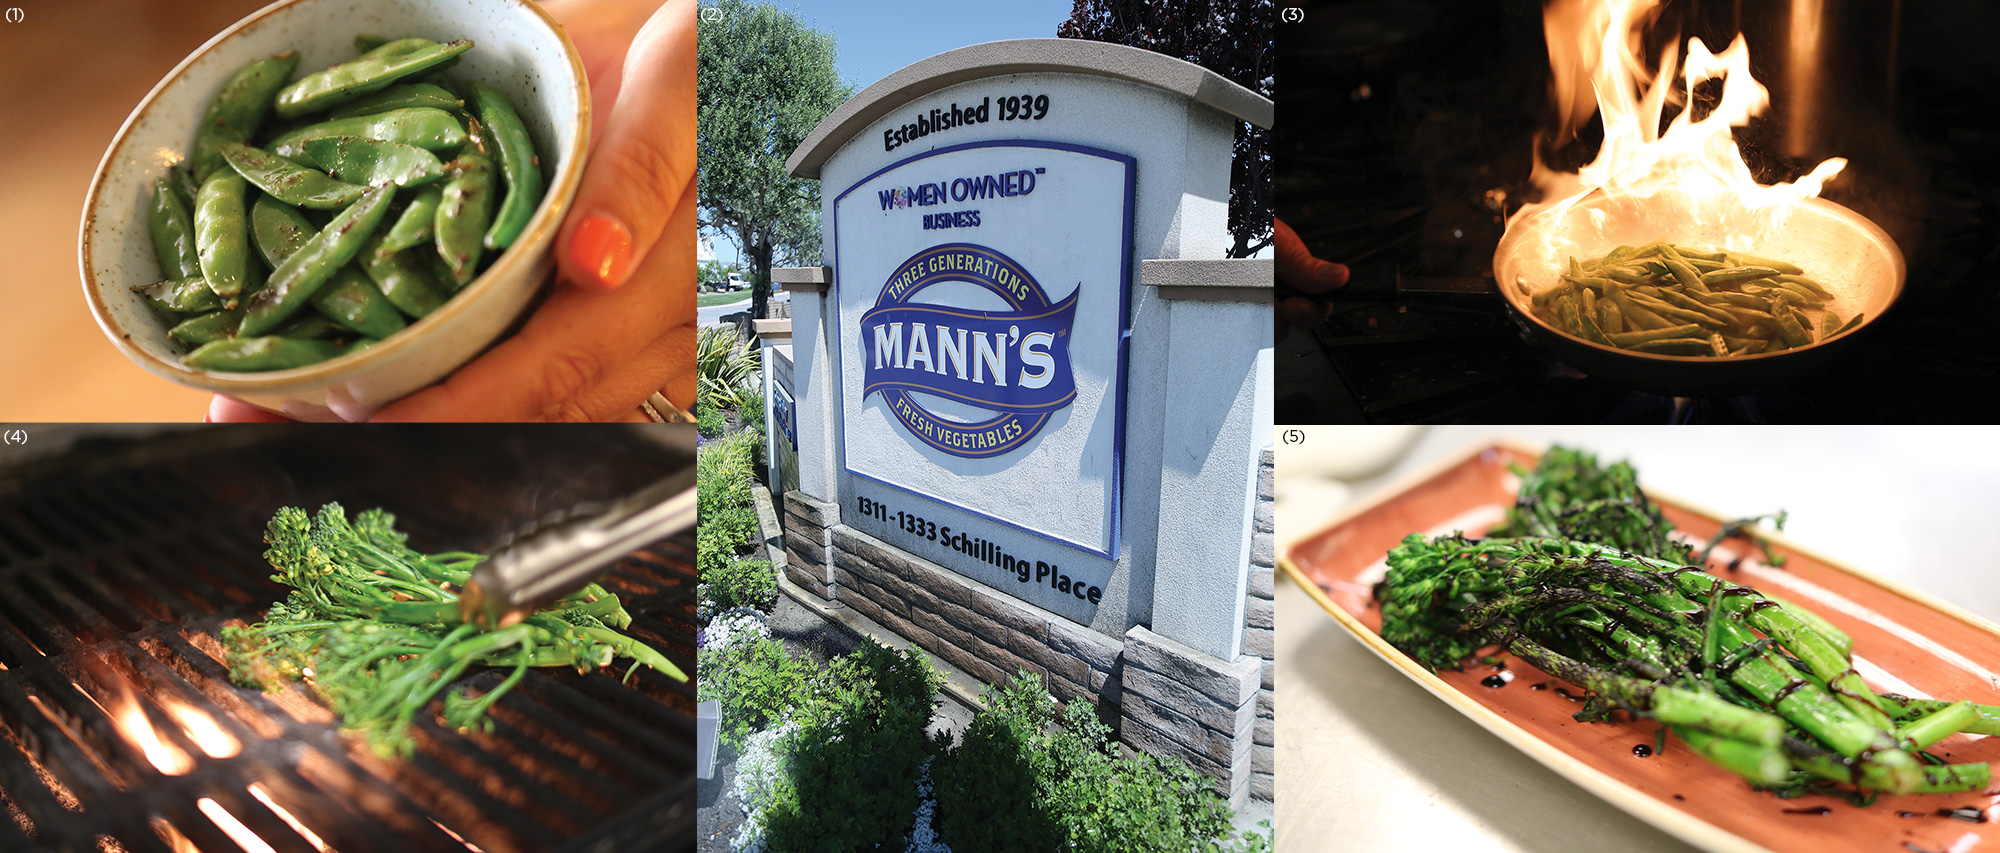 (1) Sautéed snap peas (2) The Mann Packing Headquarters in Salinas, CA (3) Snap peas frying in a skillet (4) Broccolini on the grill (5) Grilled broccolini